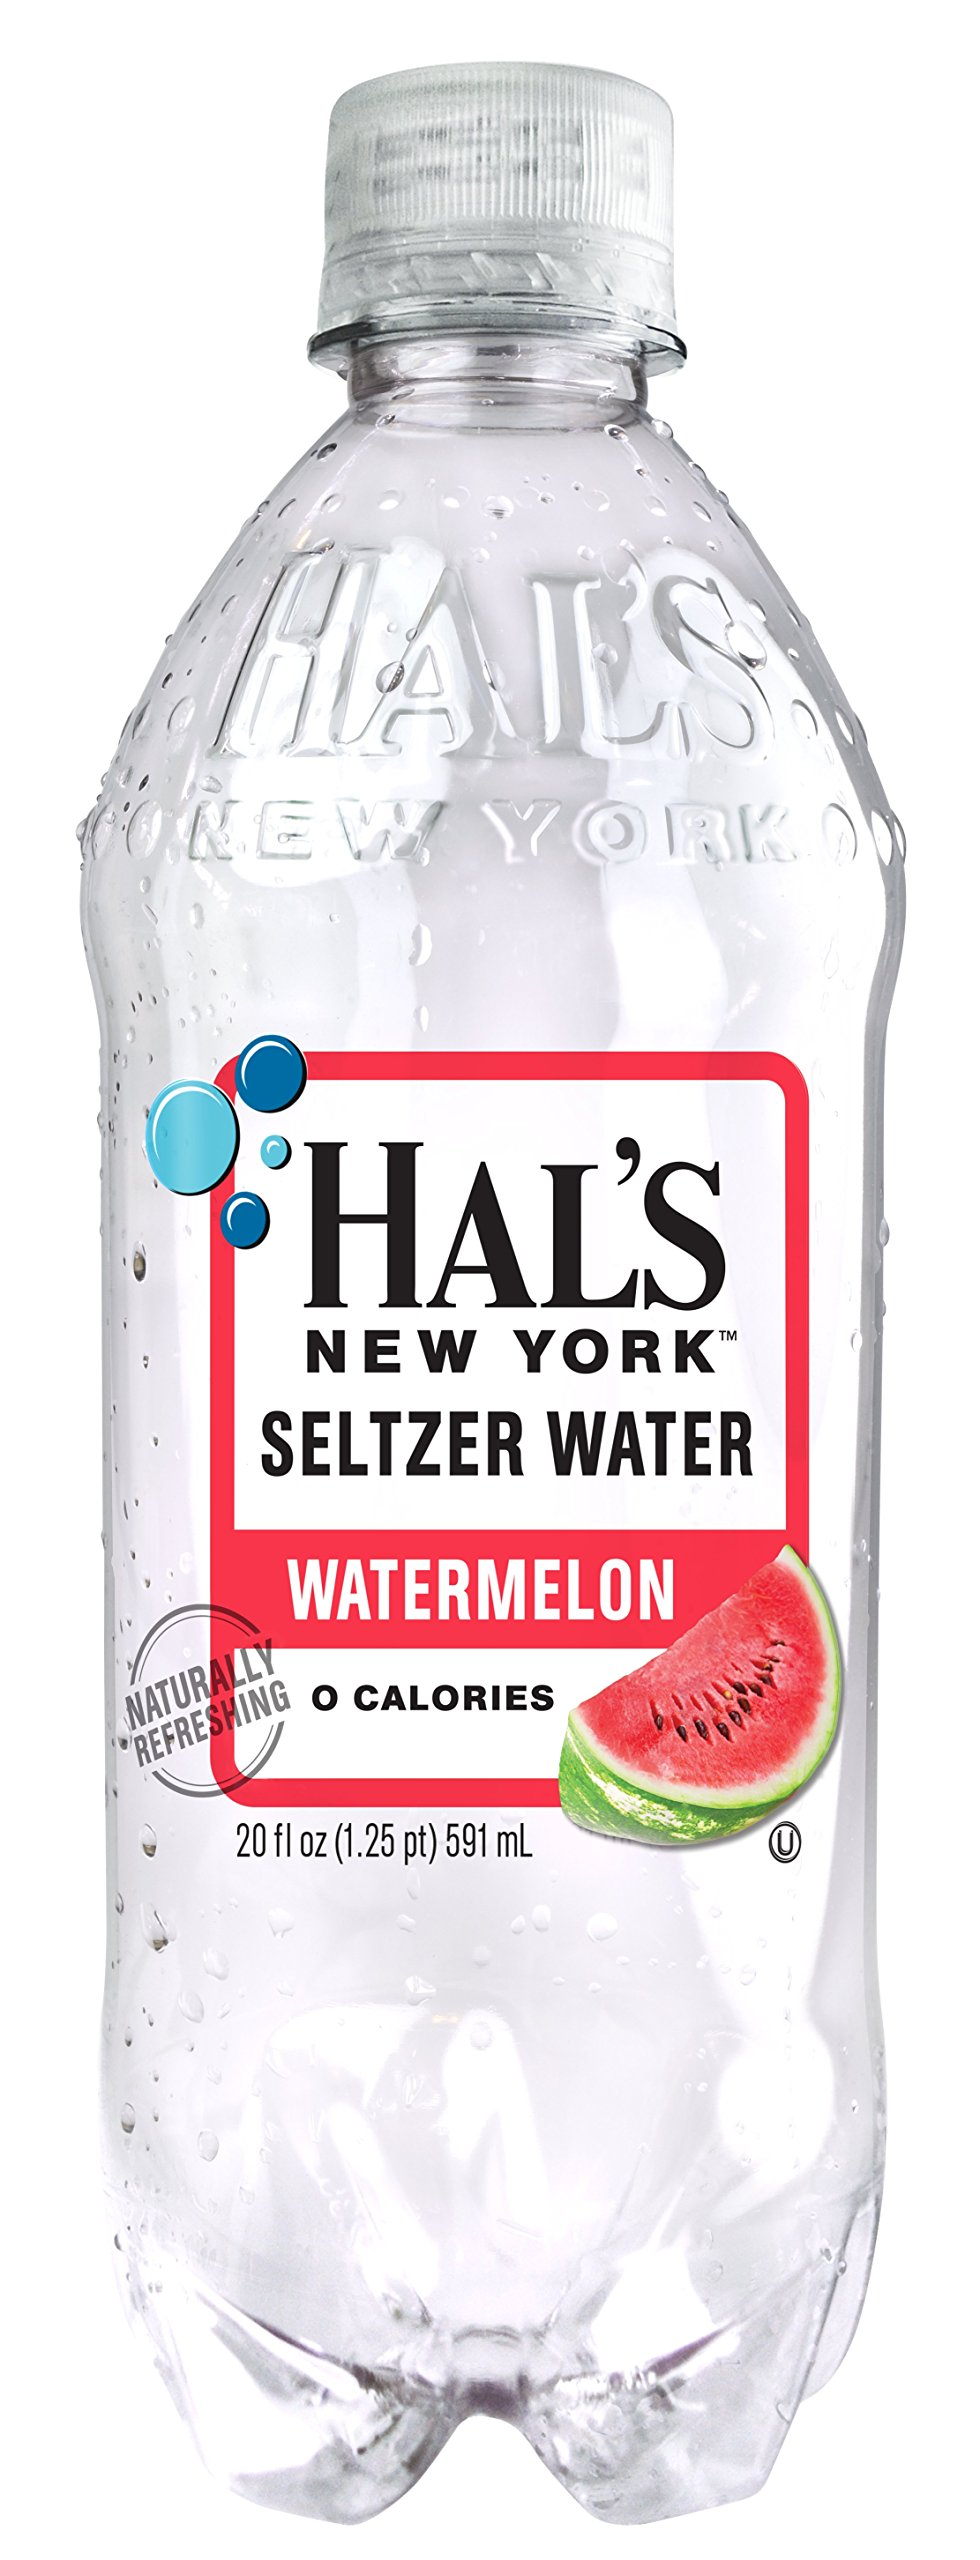 Hal's NY Seltzer Water 20 Oz Bottles (Pack of 24) (Watermelon) by Hal's New York